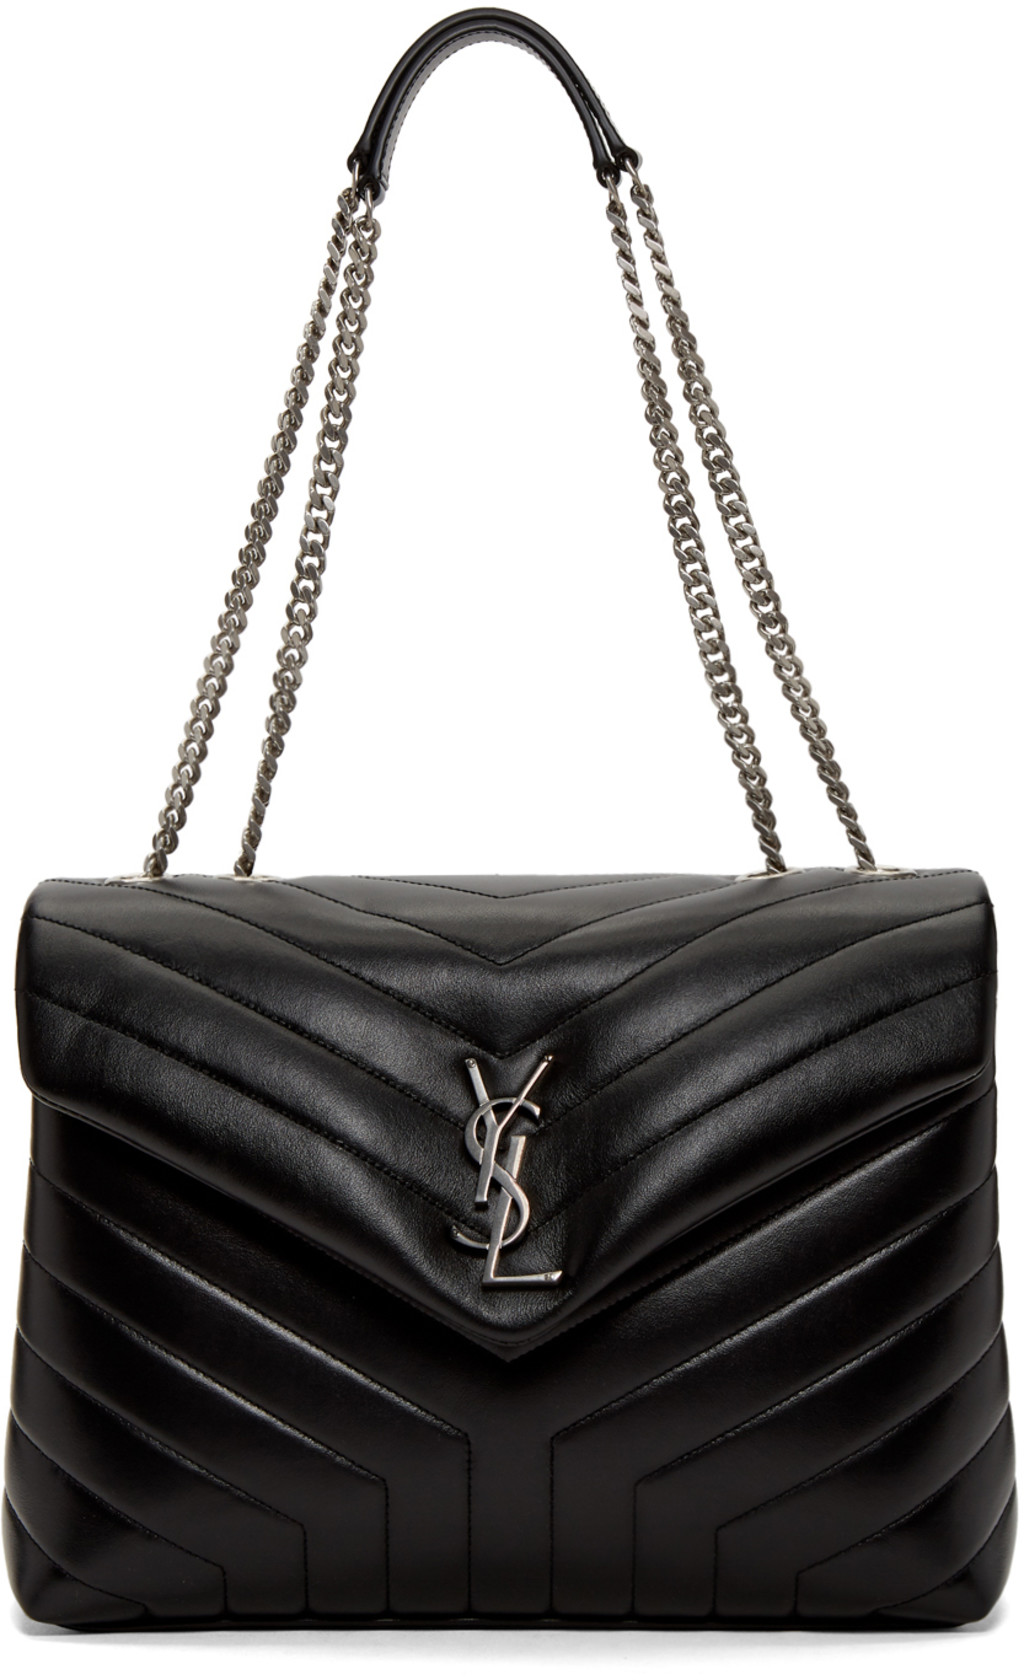 Saint Laurent Debutes Blogger Bag', One of Its Most Affordable Handbags picture